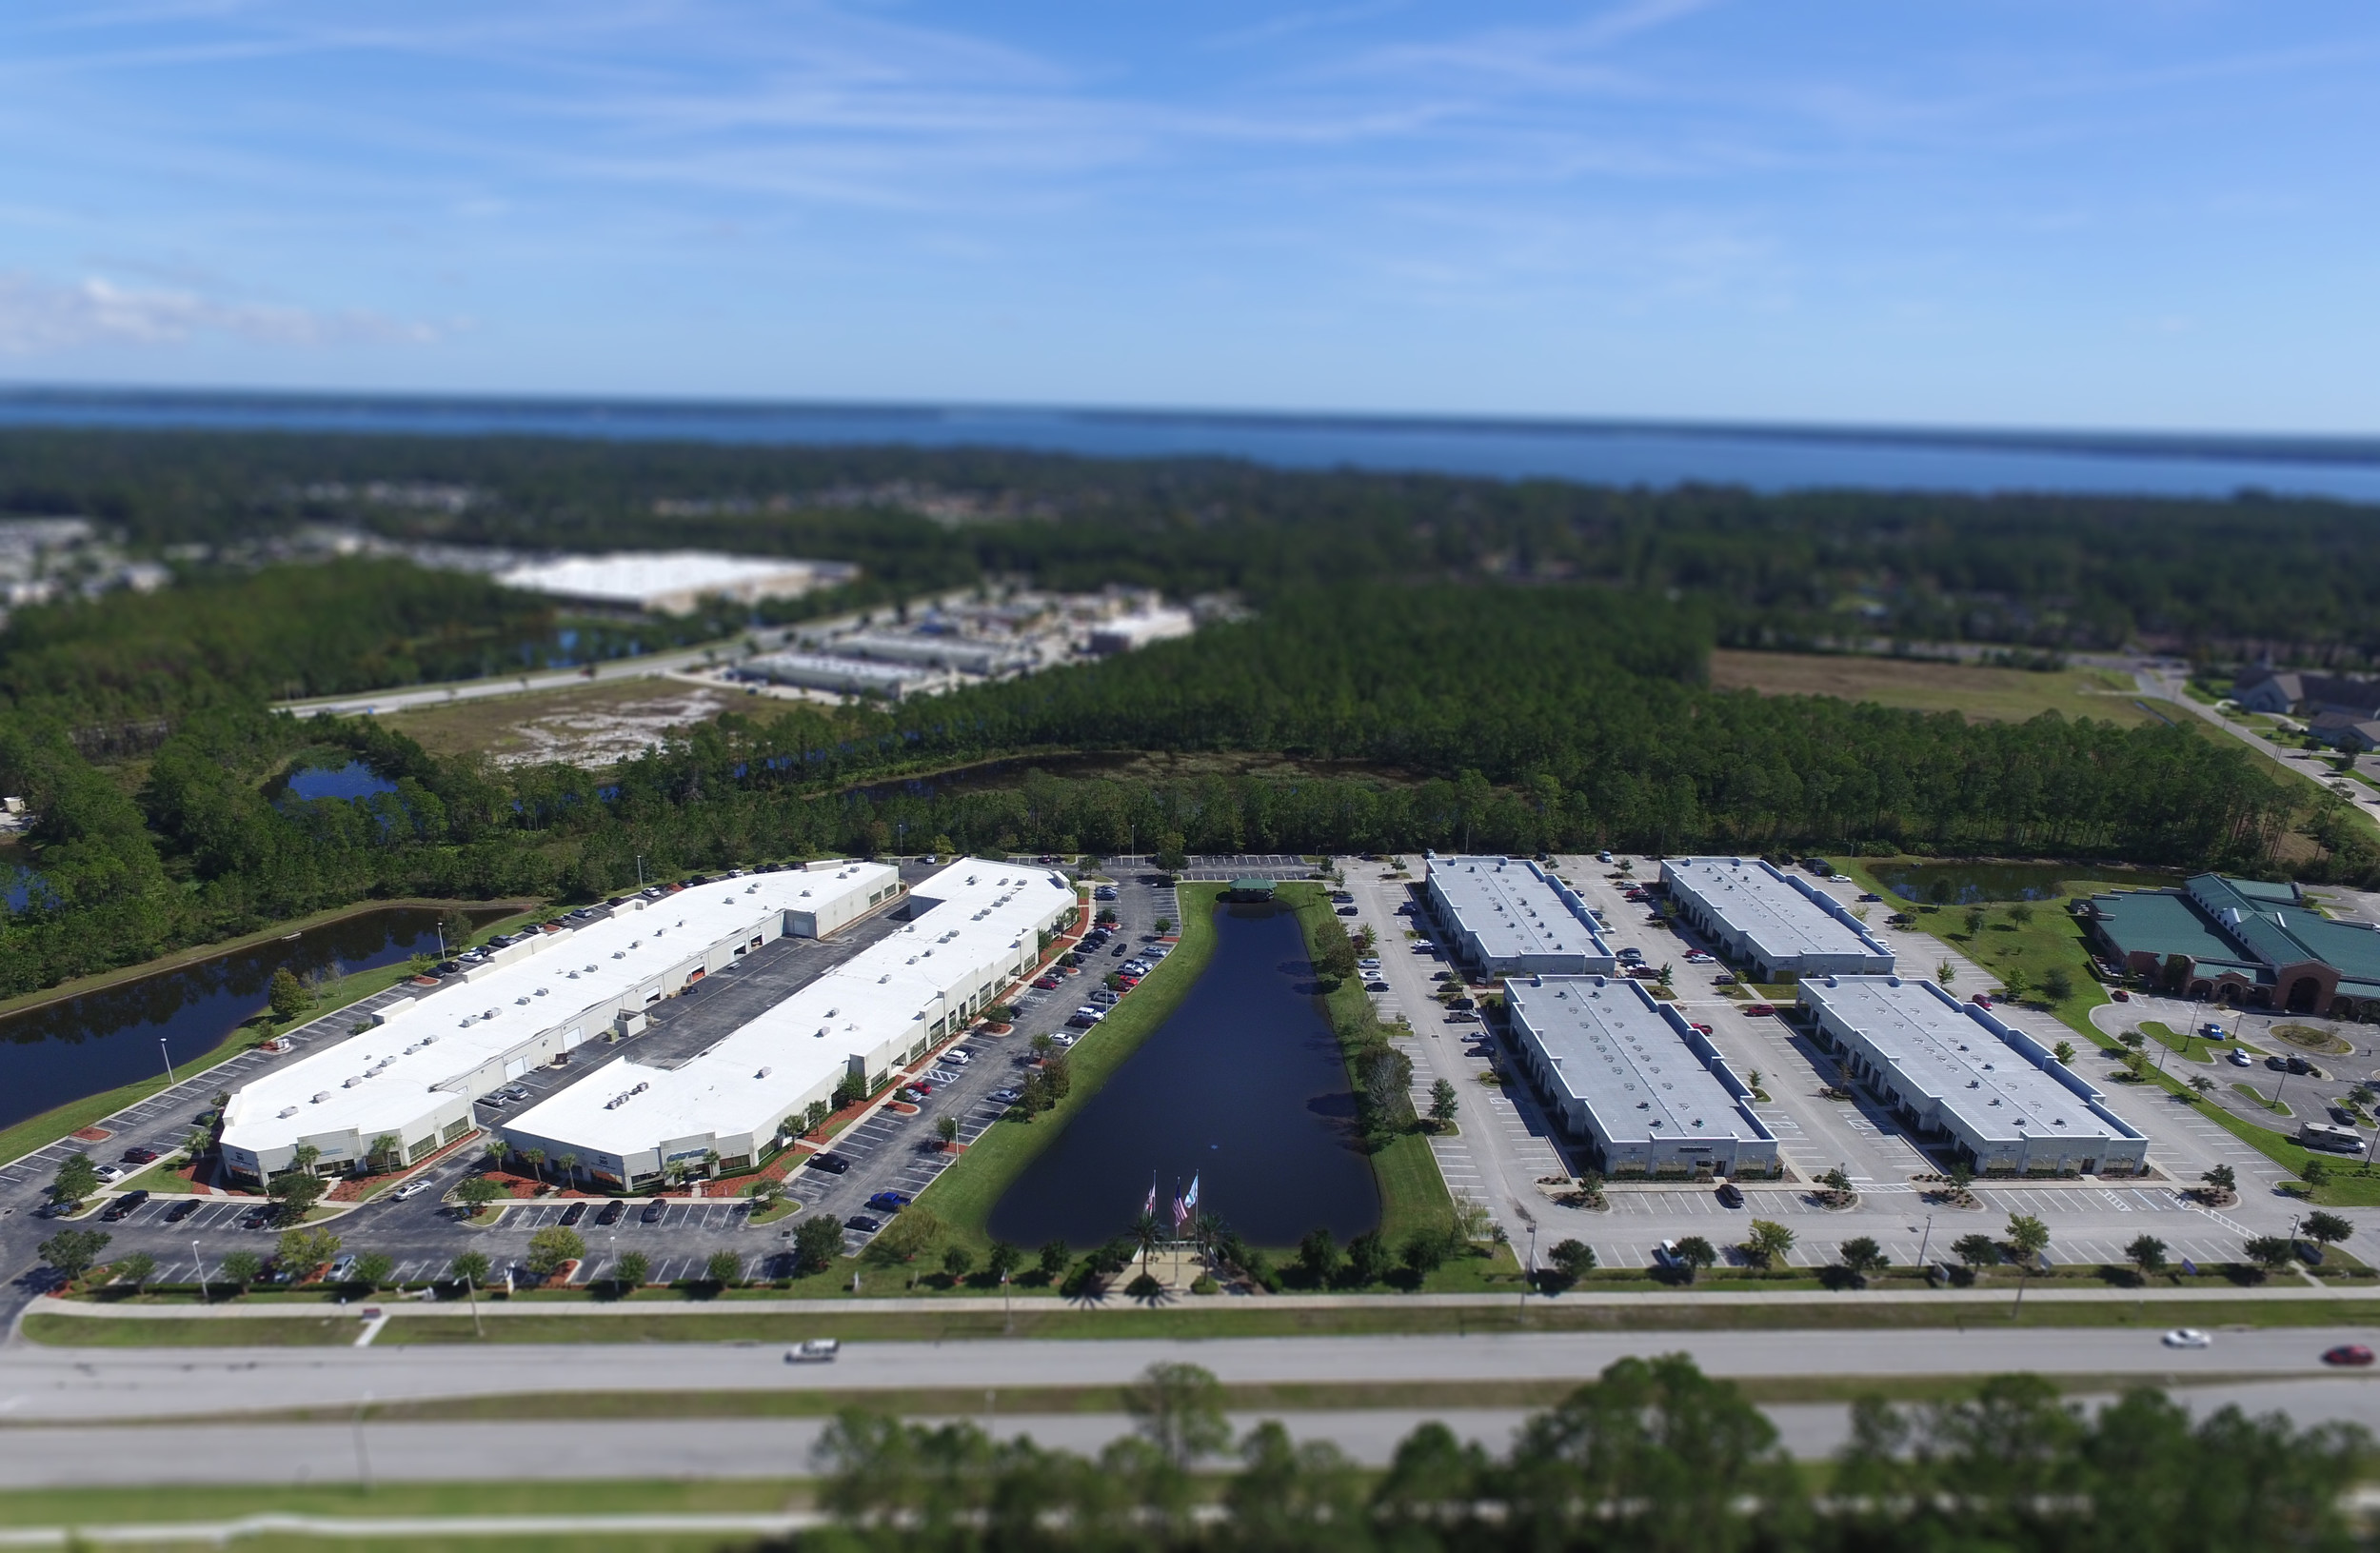 Located 20 miles southwest of downtown Jacksonville, Fleming Island Business Park consists of 143,669 square feet within six single story office buildings.